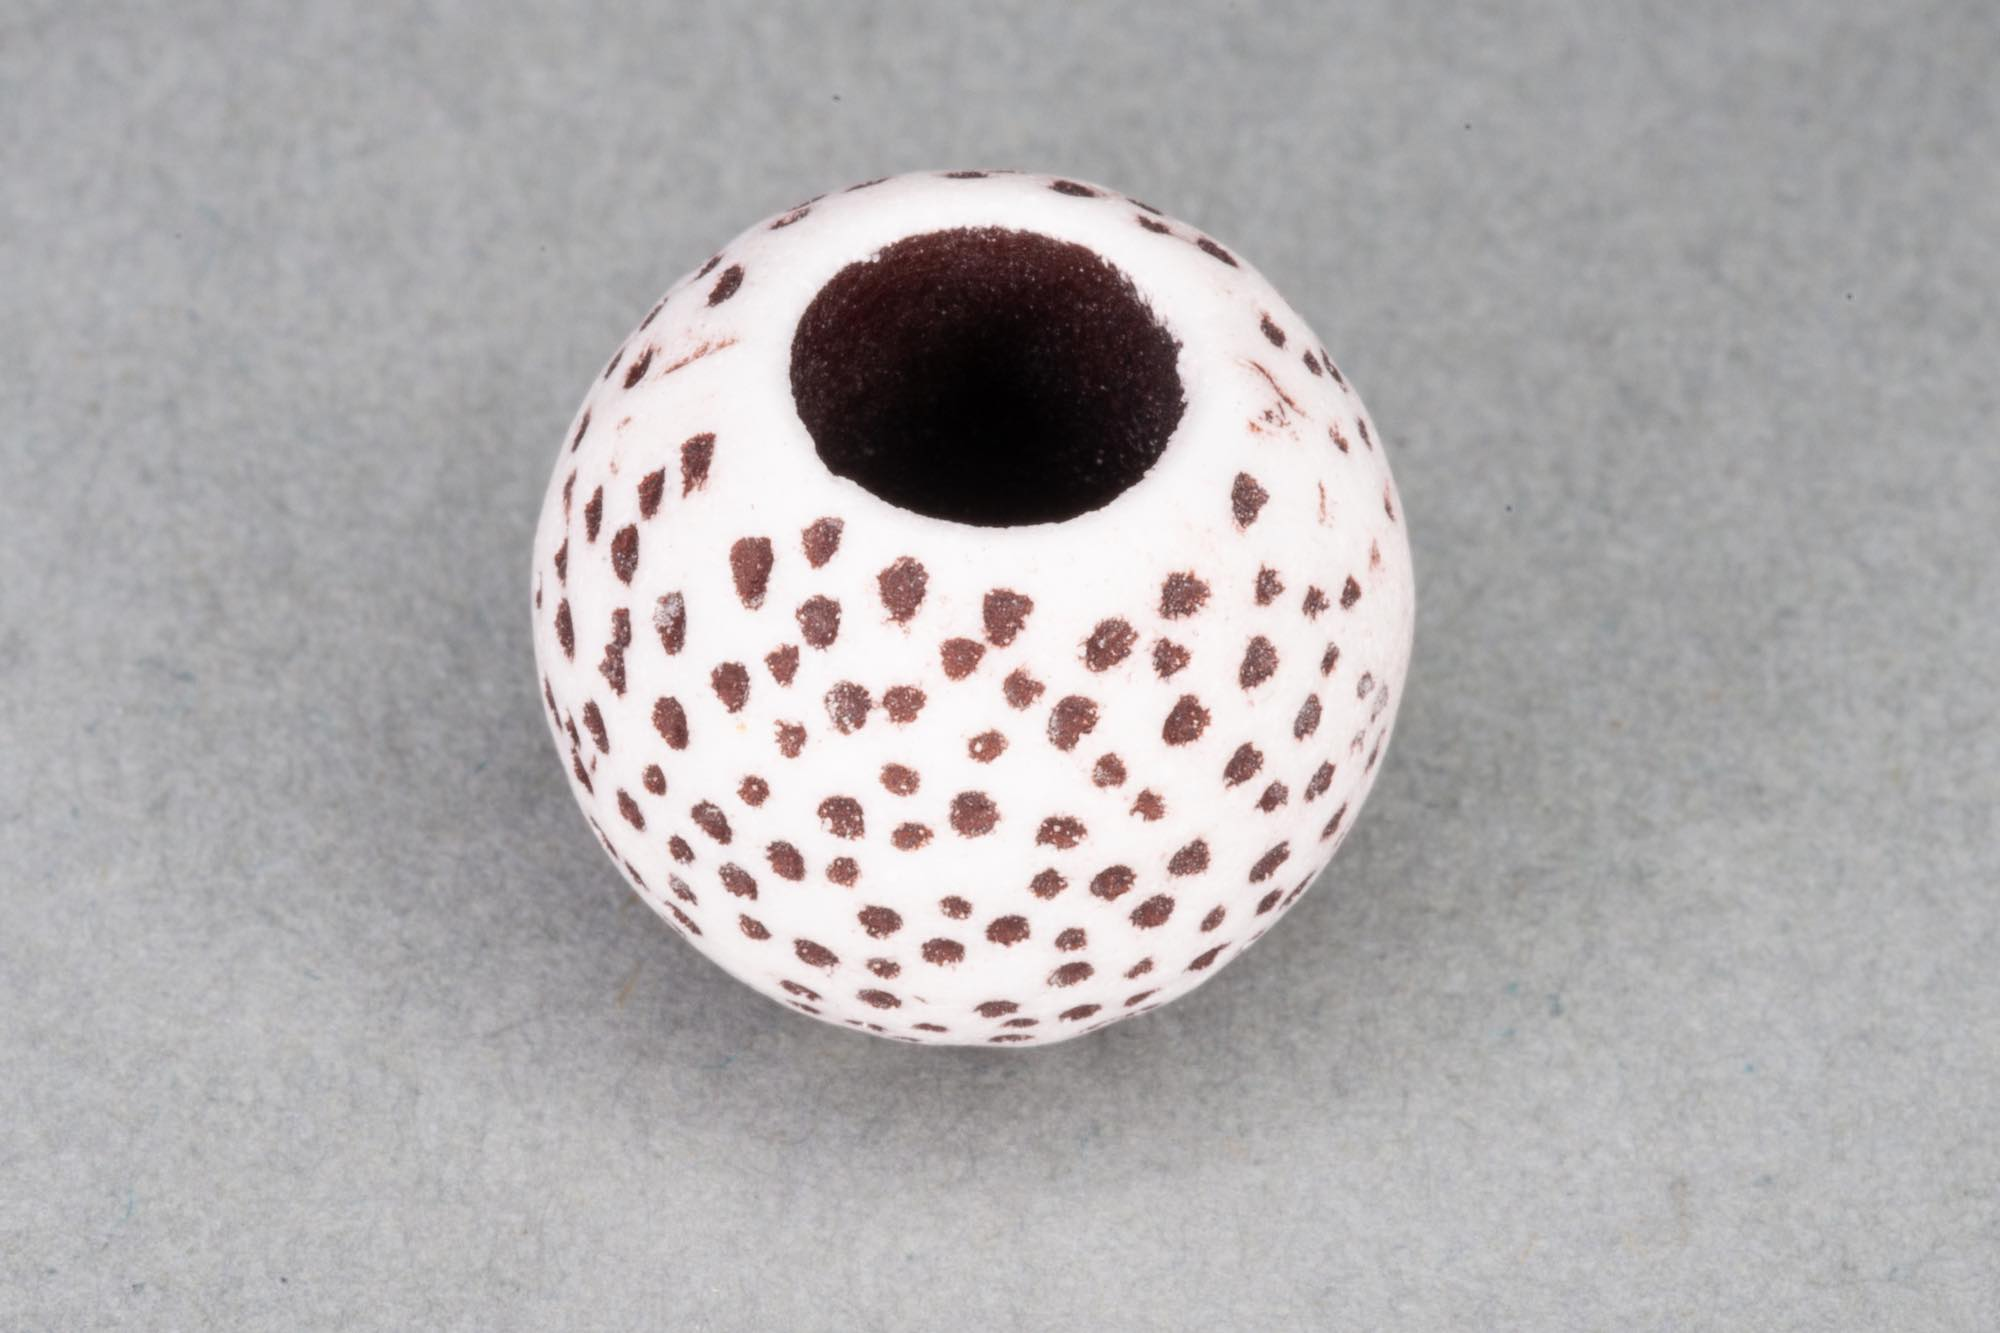 Acrylic Large Hole Bead With Brown Speckle Effect, 14x12mm, 6mm hole